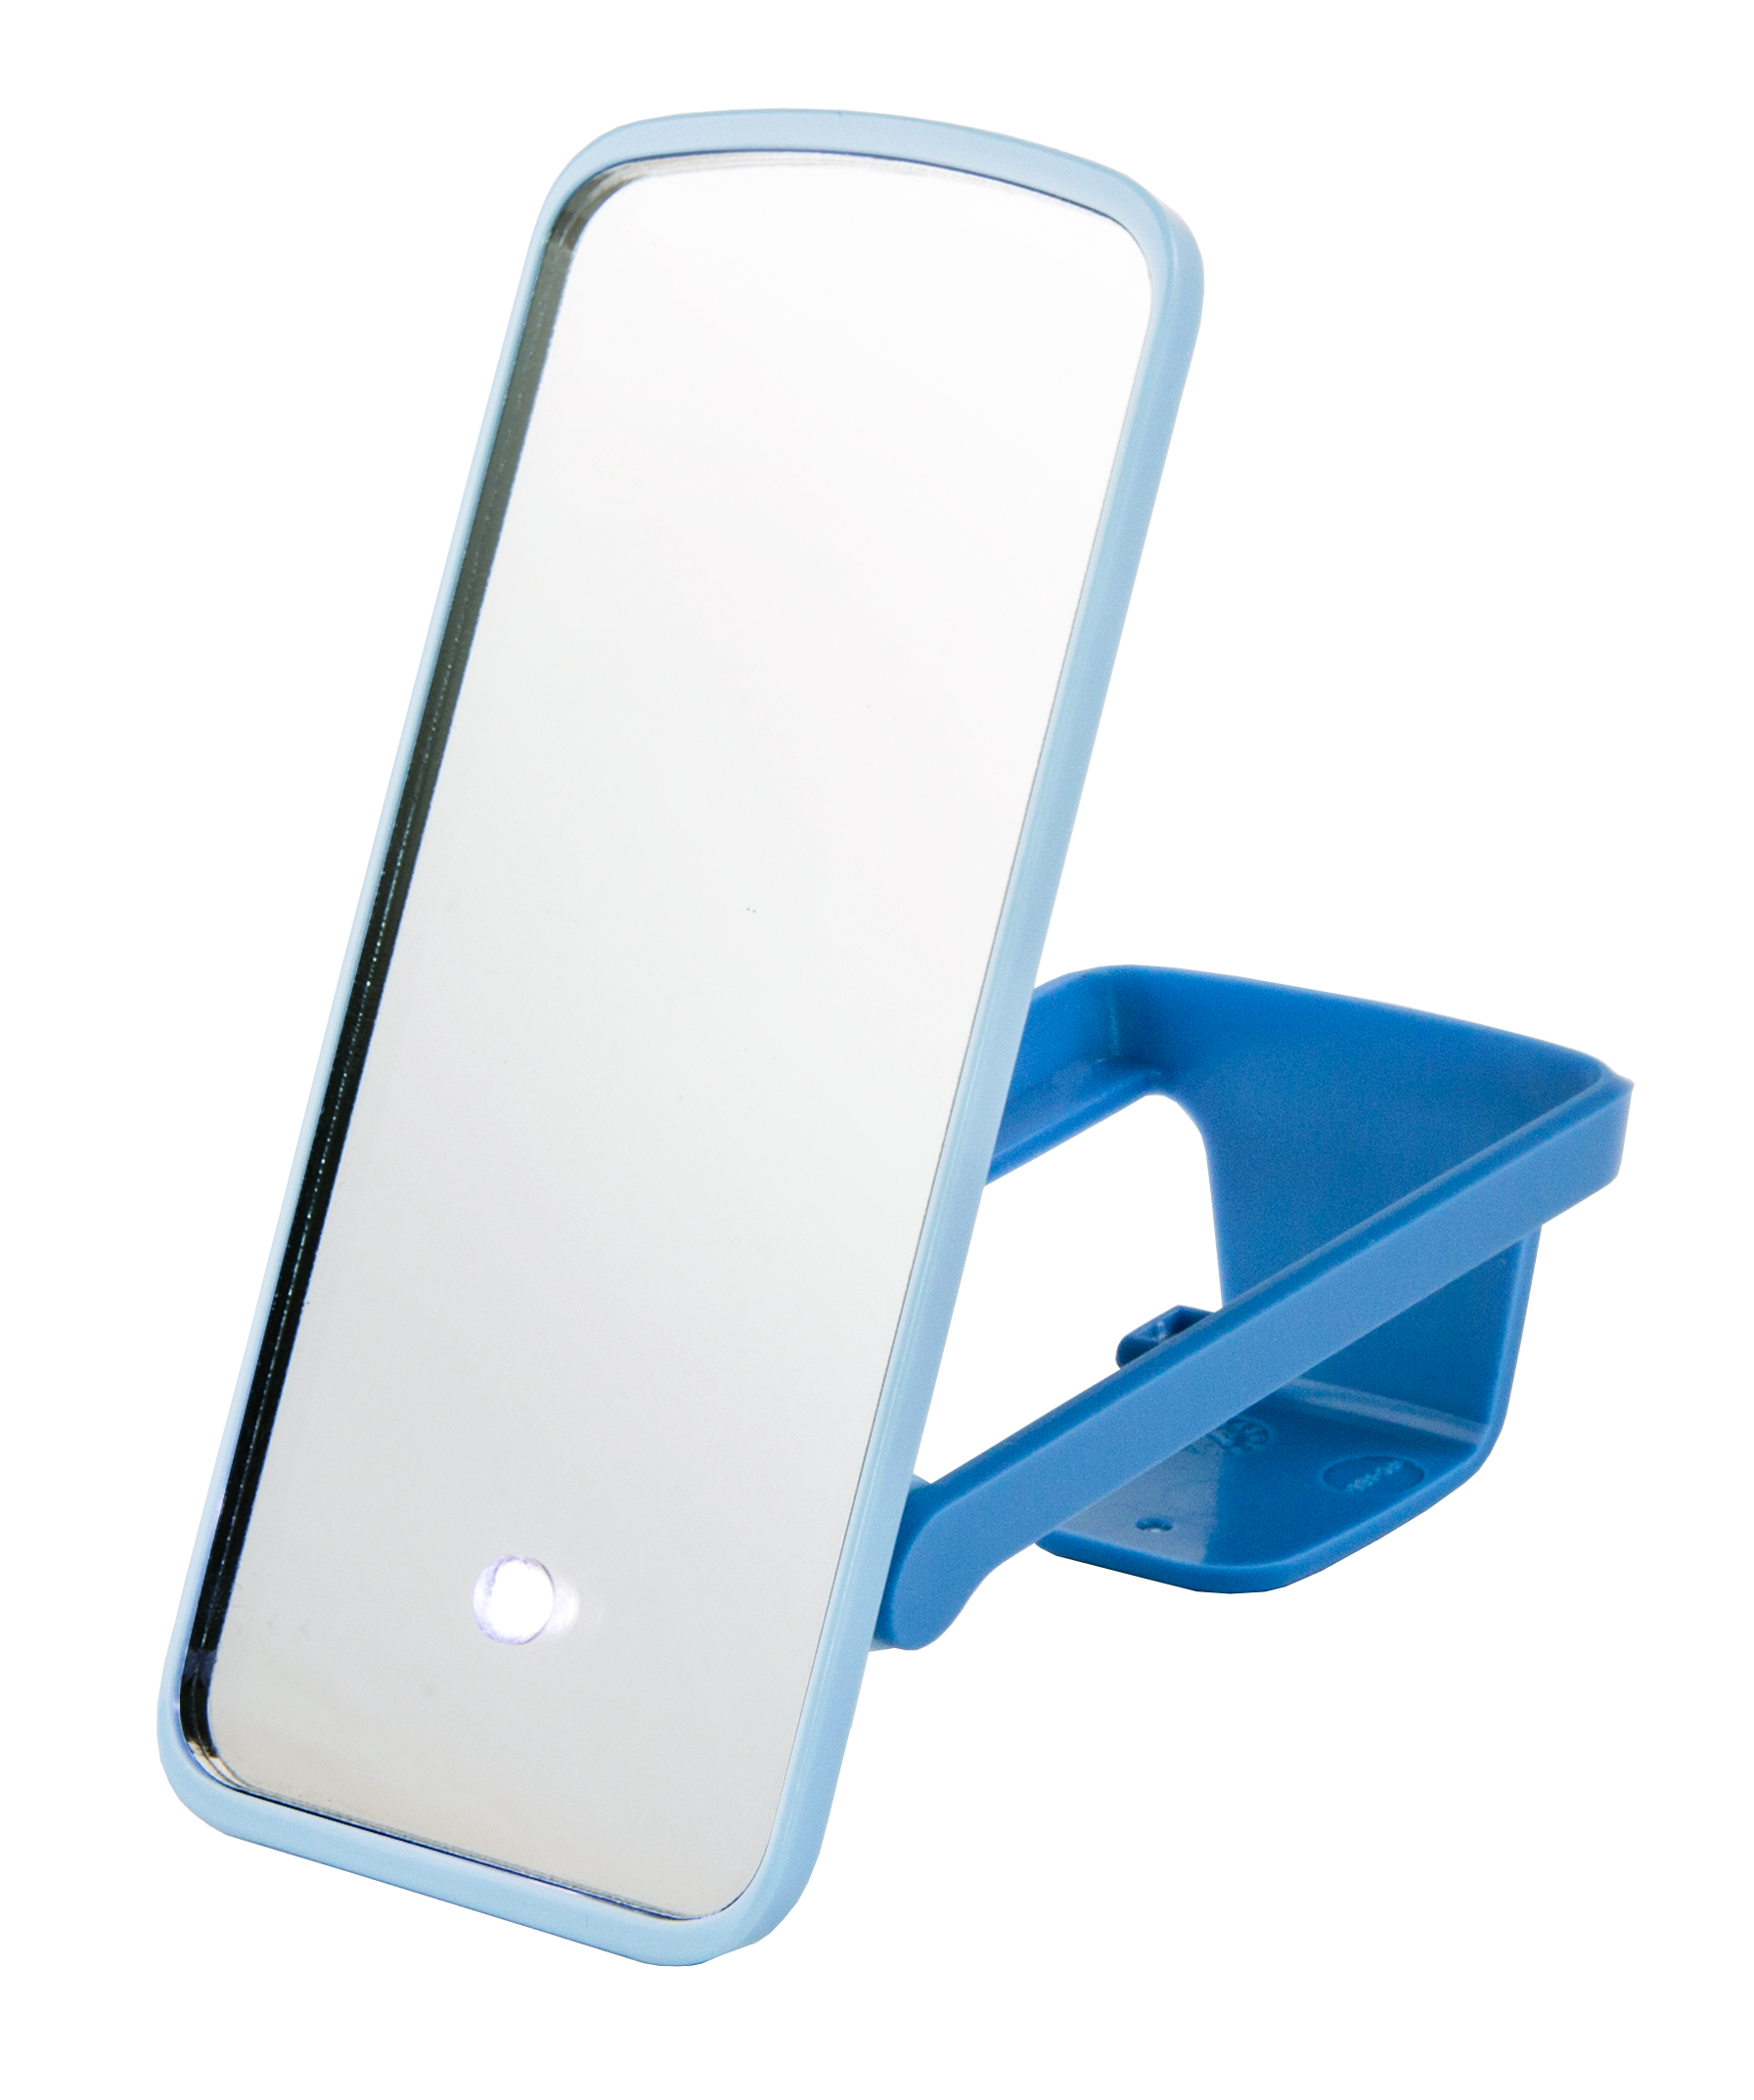 Bright, mirror that helps with self-catheterizaton CISC